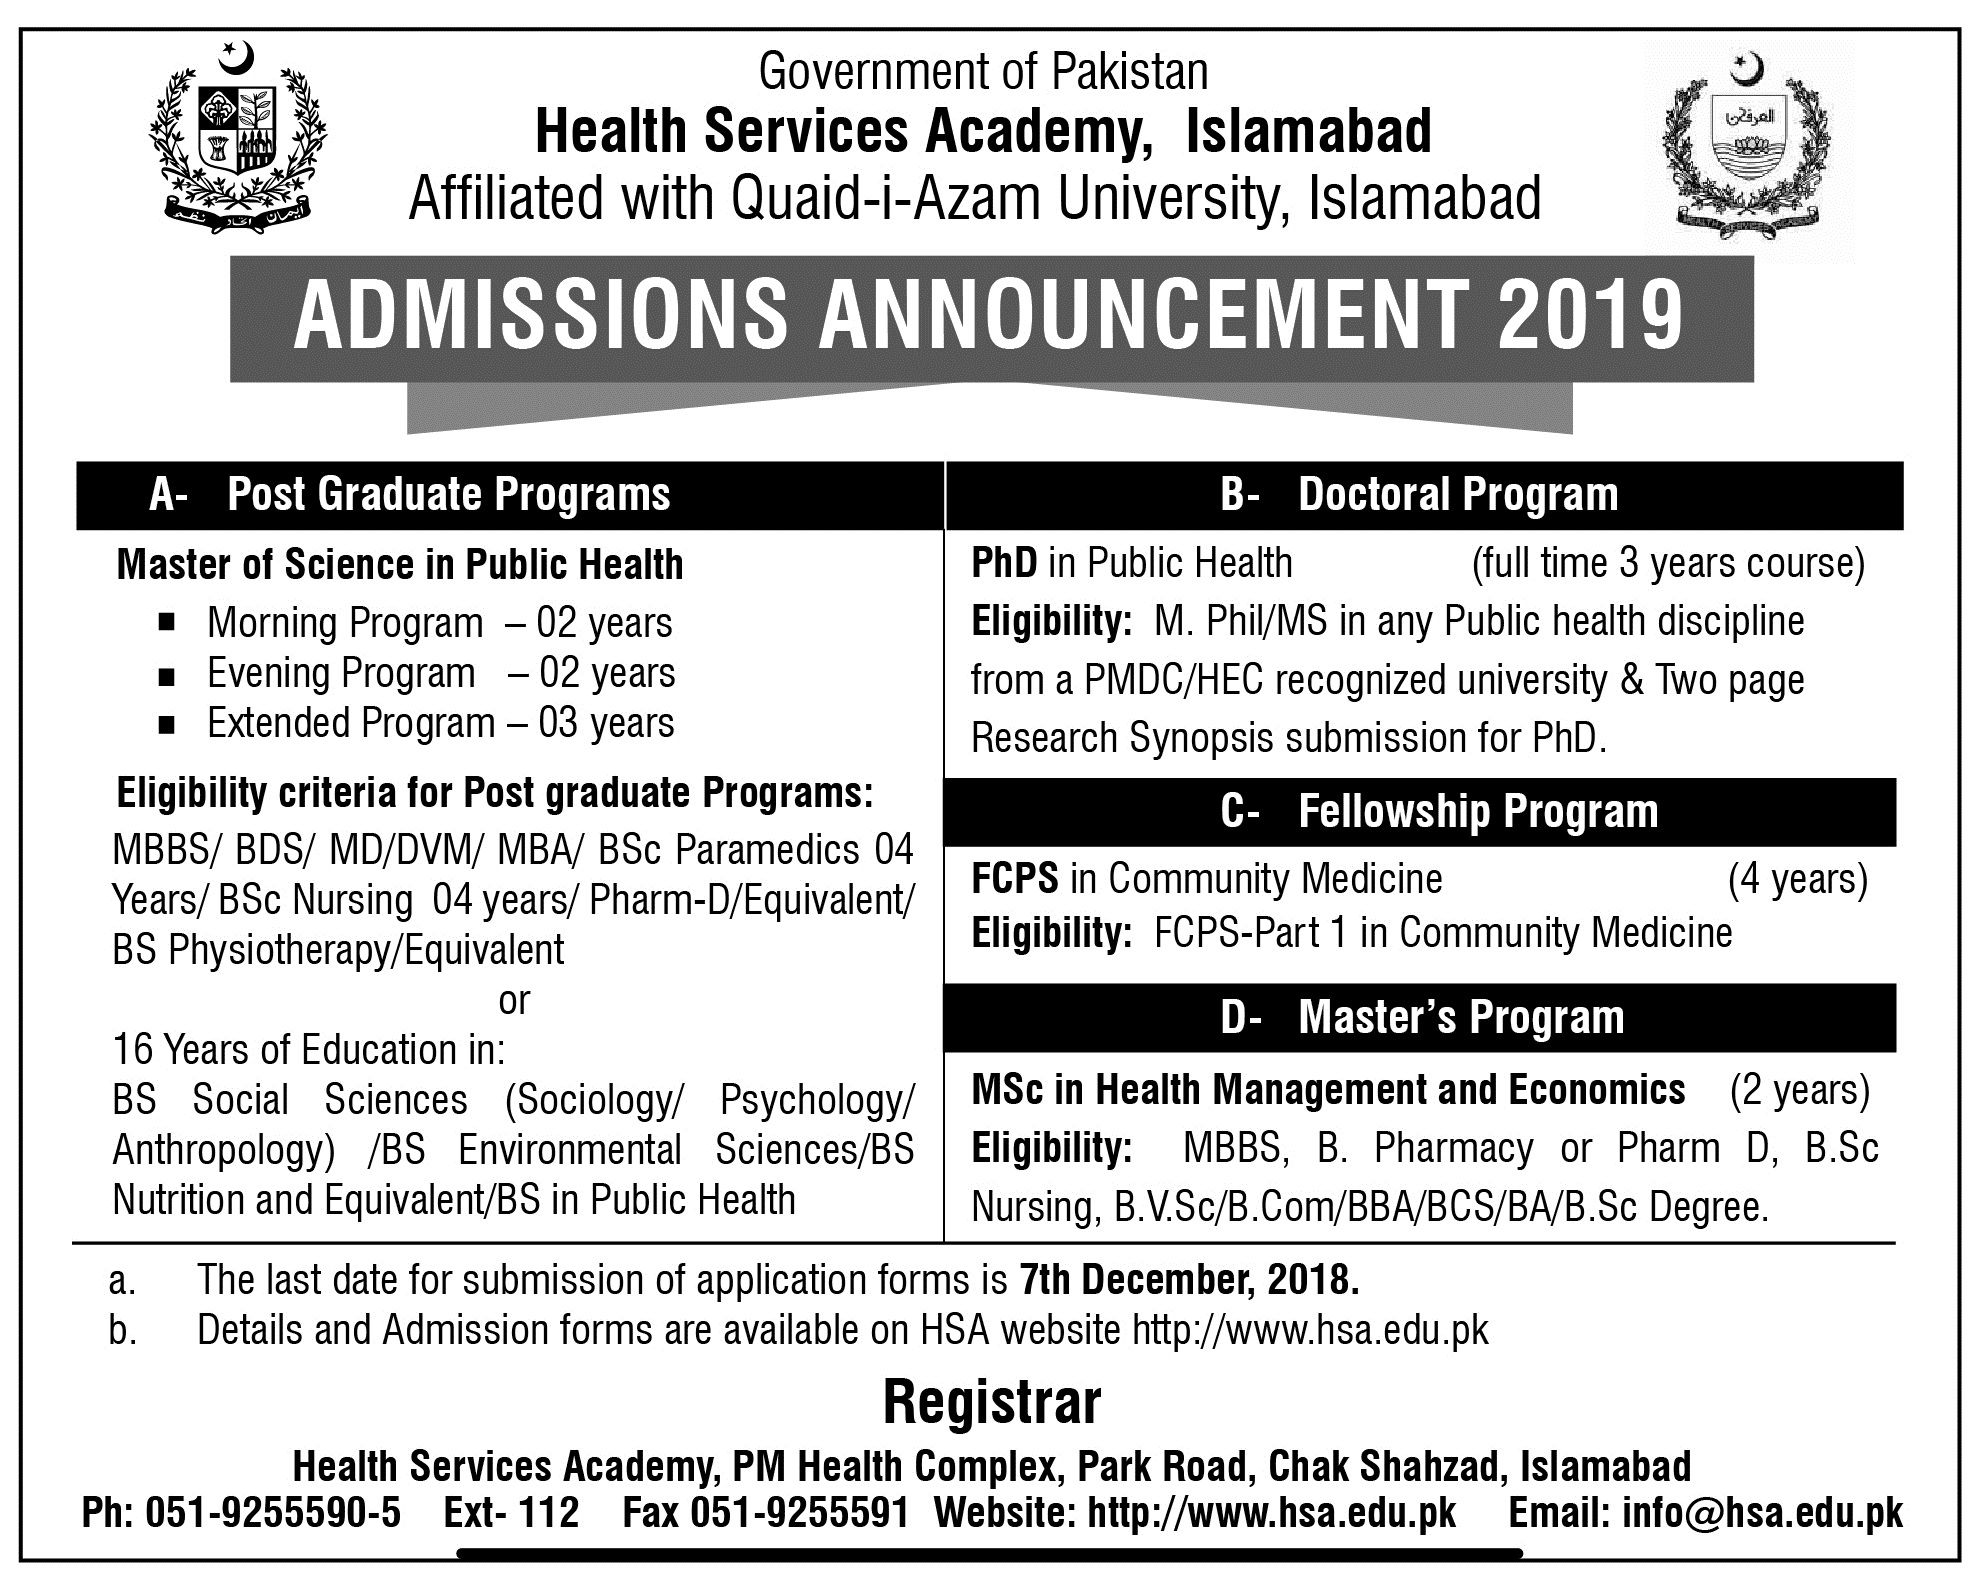 Health Services Academy Islamabad Admissions 2019